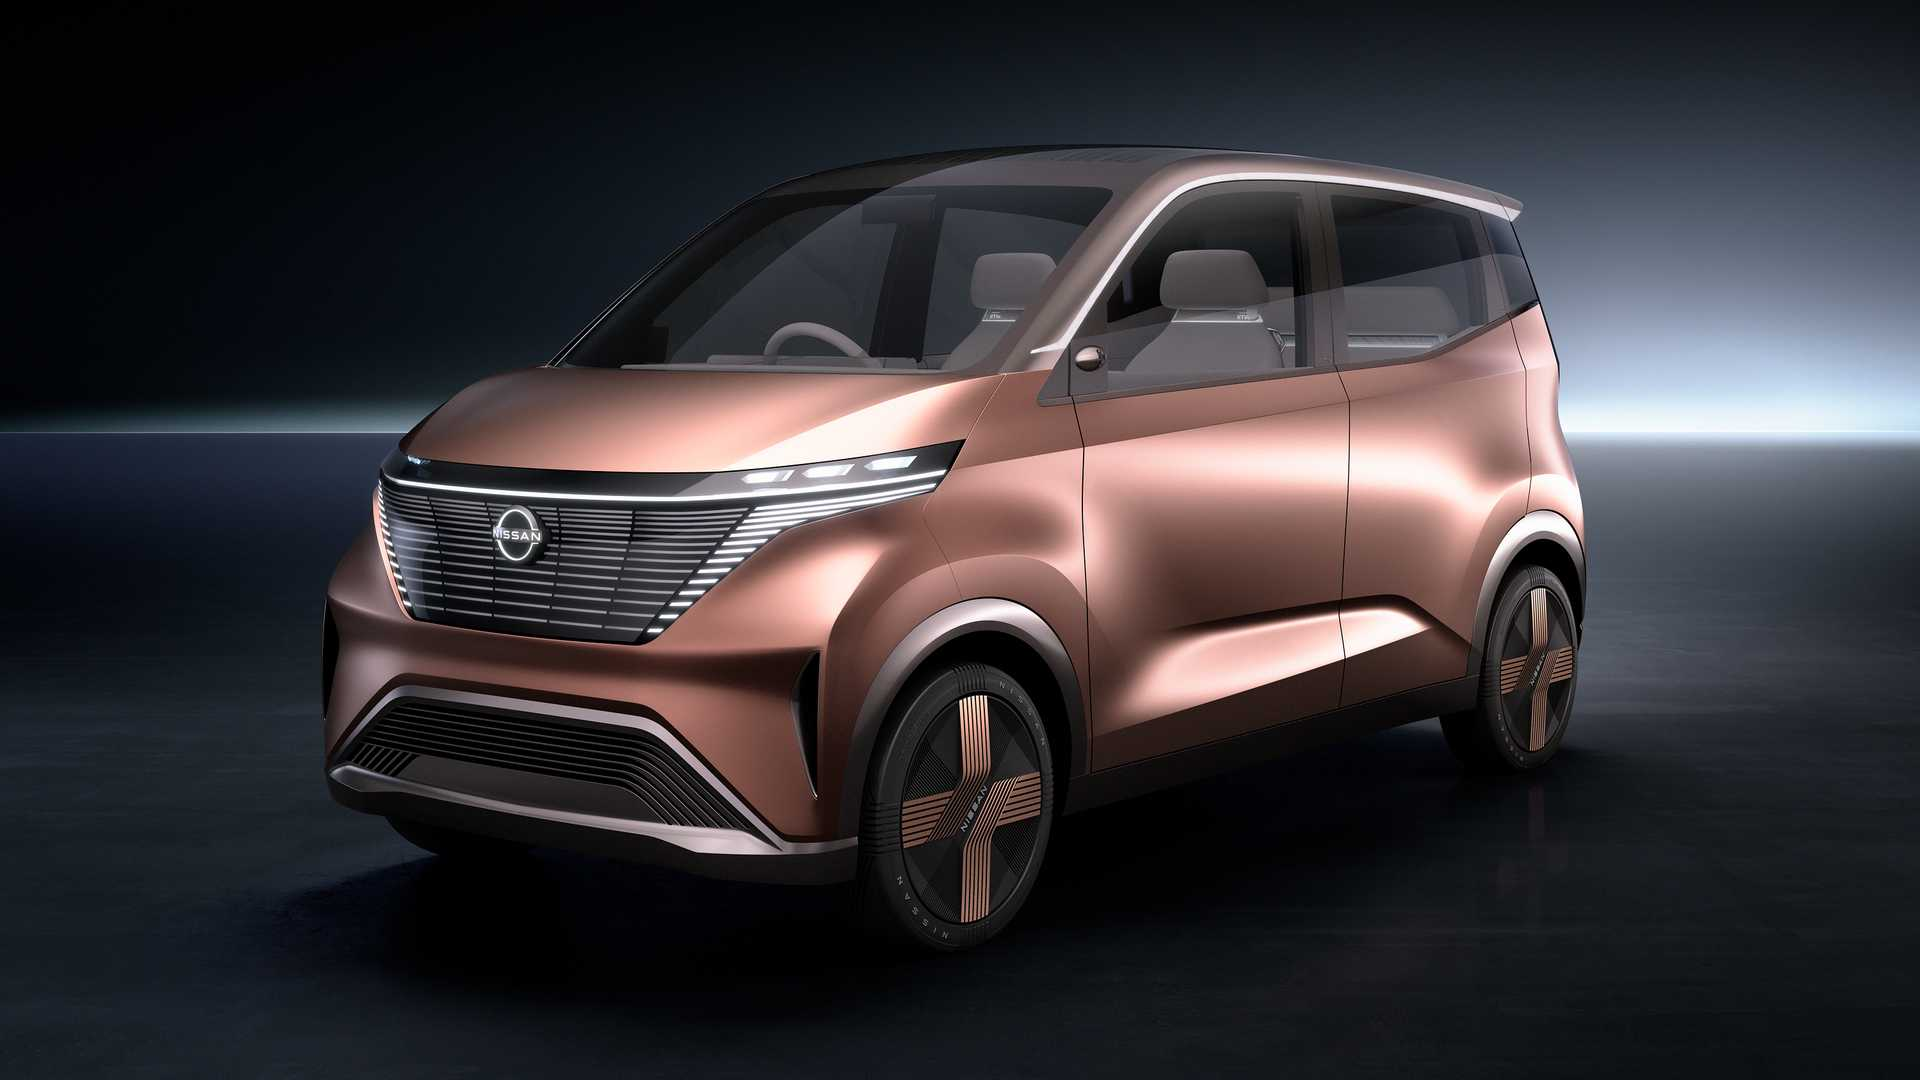 Peachy Nissan Imk Concept Unveiled As Cute City Ev With Front Bench Machost Co Dining Chair Design Ideas Machostcouk